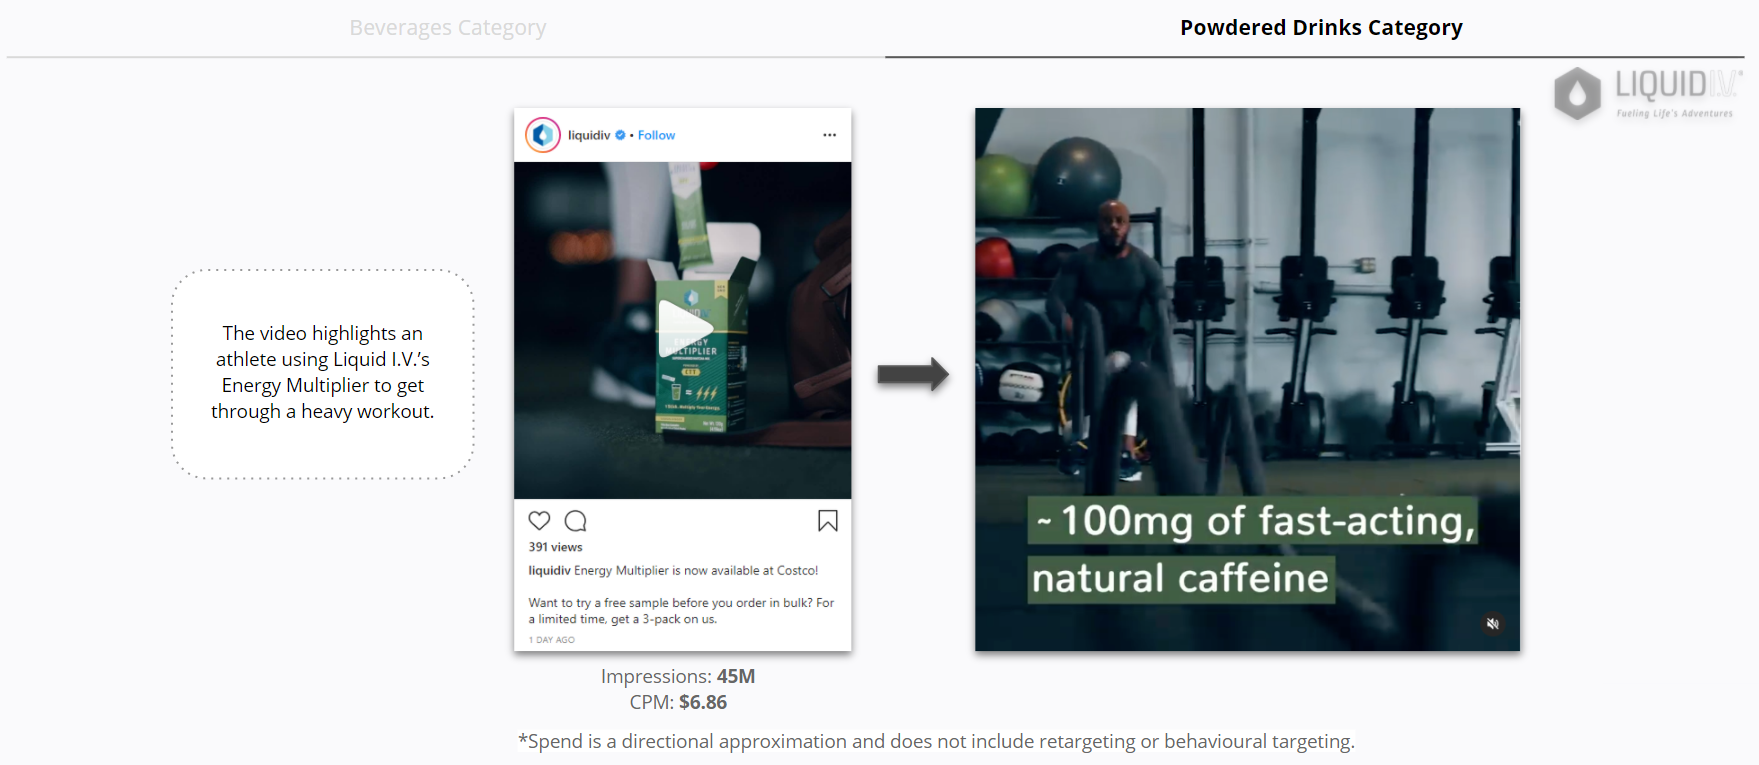 The brand also promoted the campaign on Instagram, but rather than using product stills, they ran a video ad that targeted a male, fitness-inclined audience.